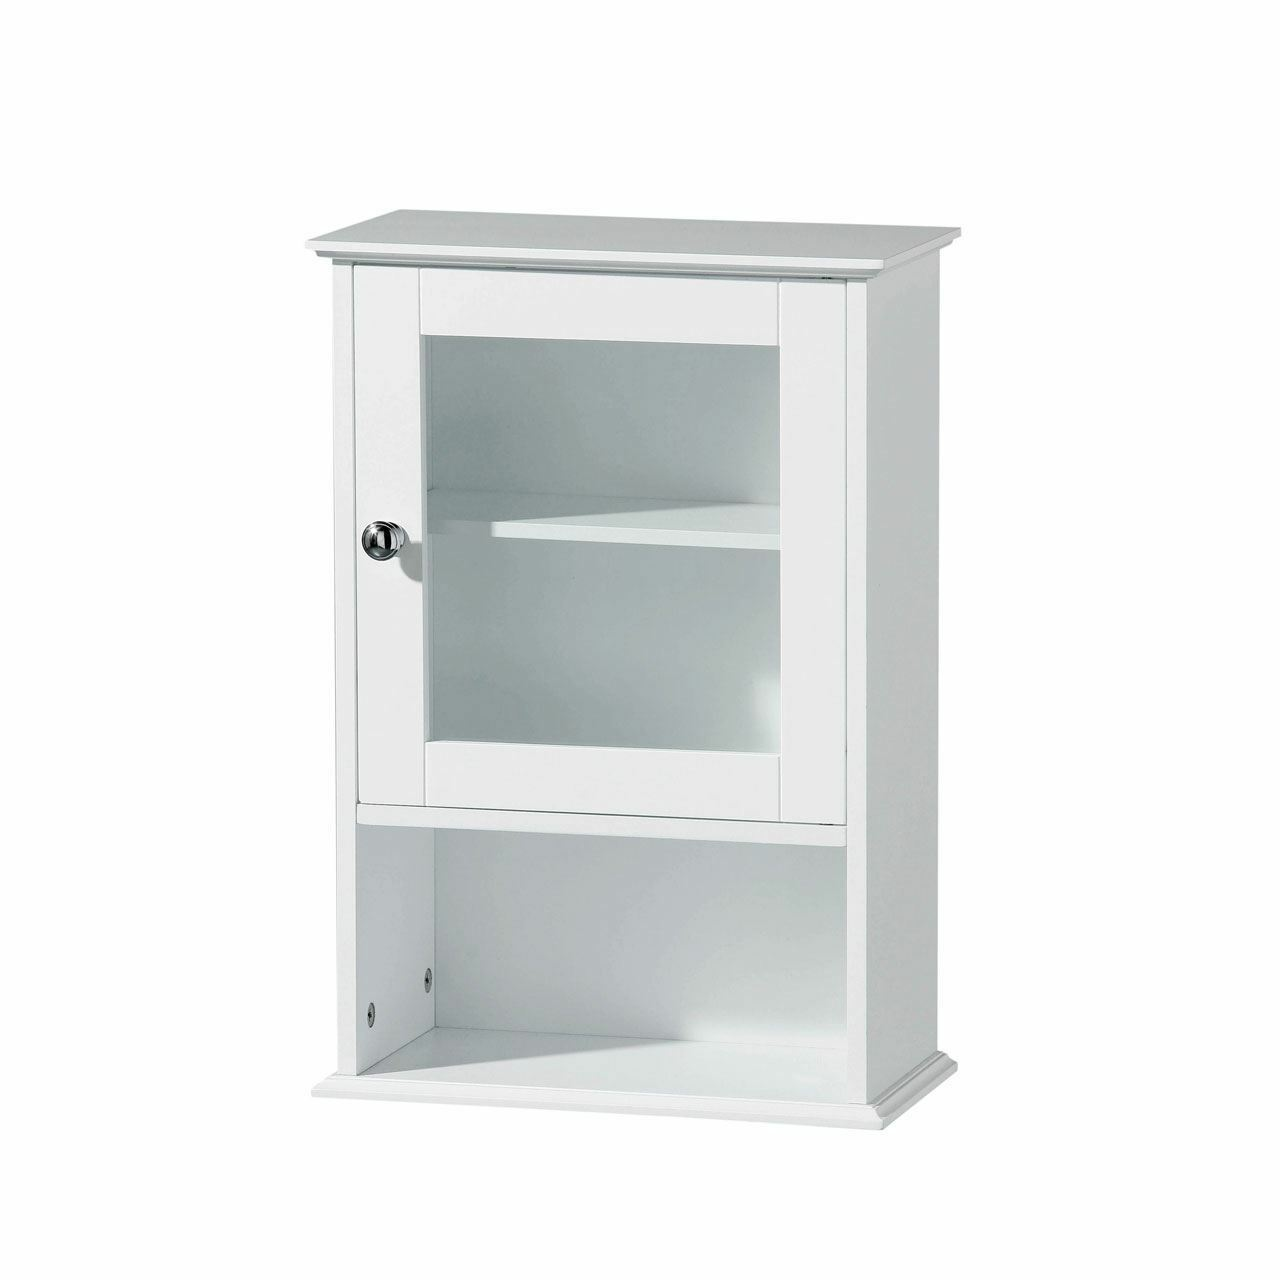 Details About White Wooden Wall Mounted Bathroom Storage Cabinet With Glass Door Brand New